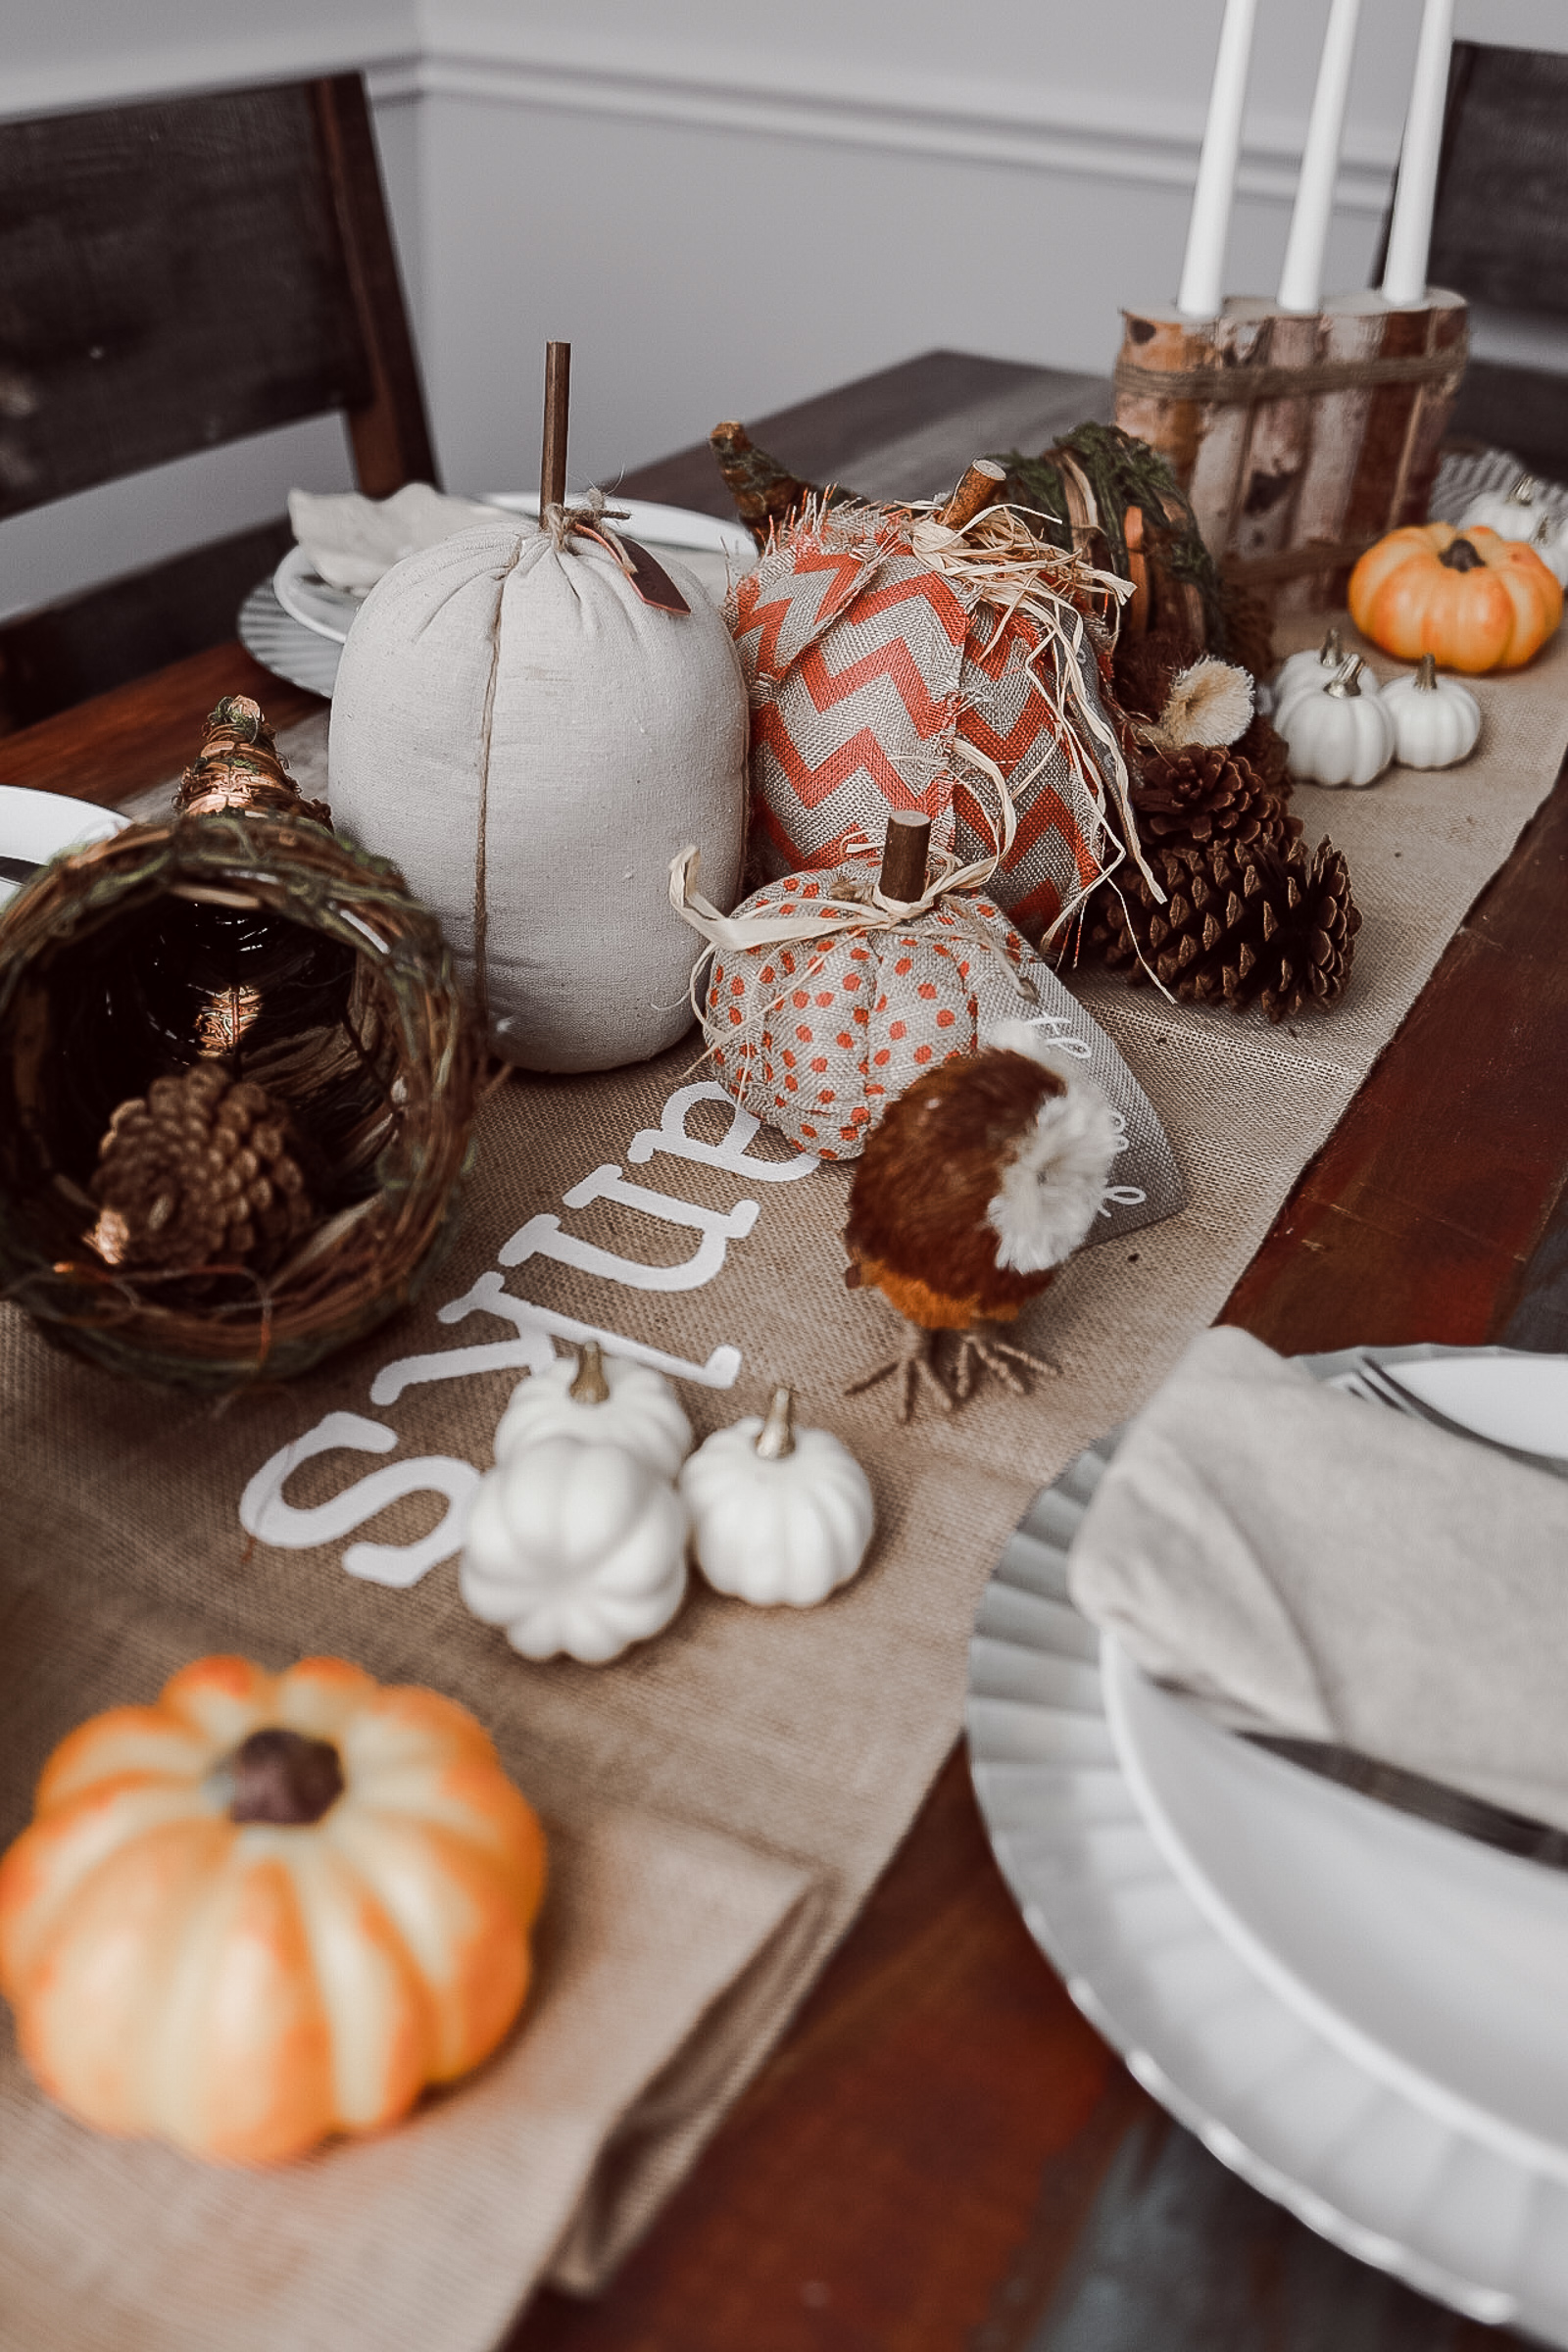 Houston lifestyle blogger Uptown with Elly Brown shares 15 Thanksgiving Tablescapes to copy! From shabby chic to farmhouse, she has you covered!